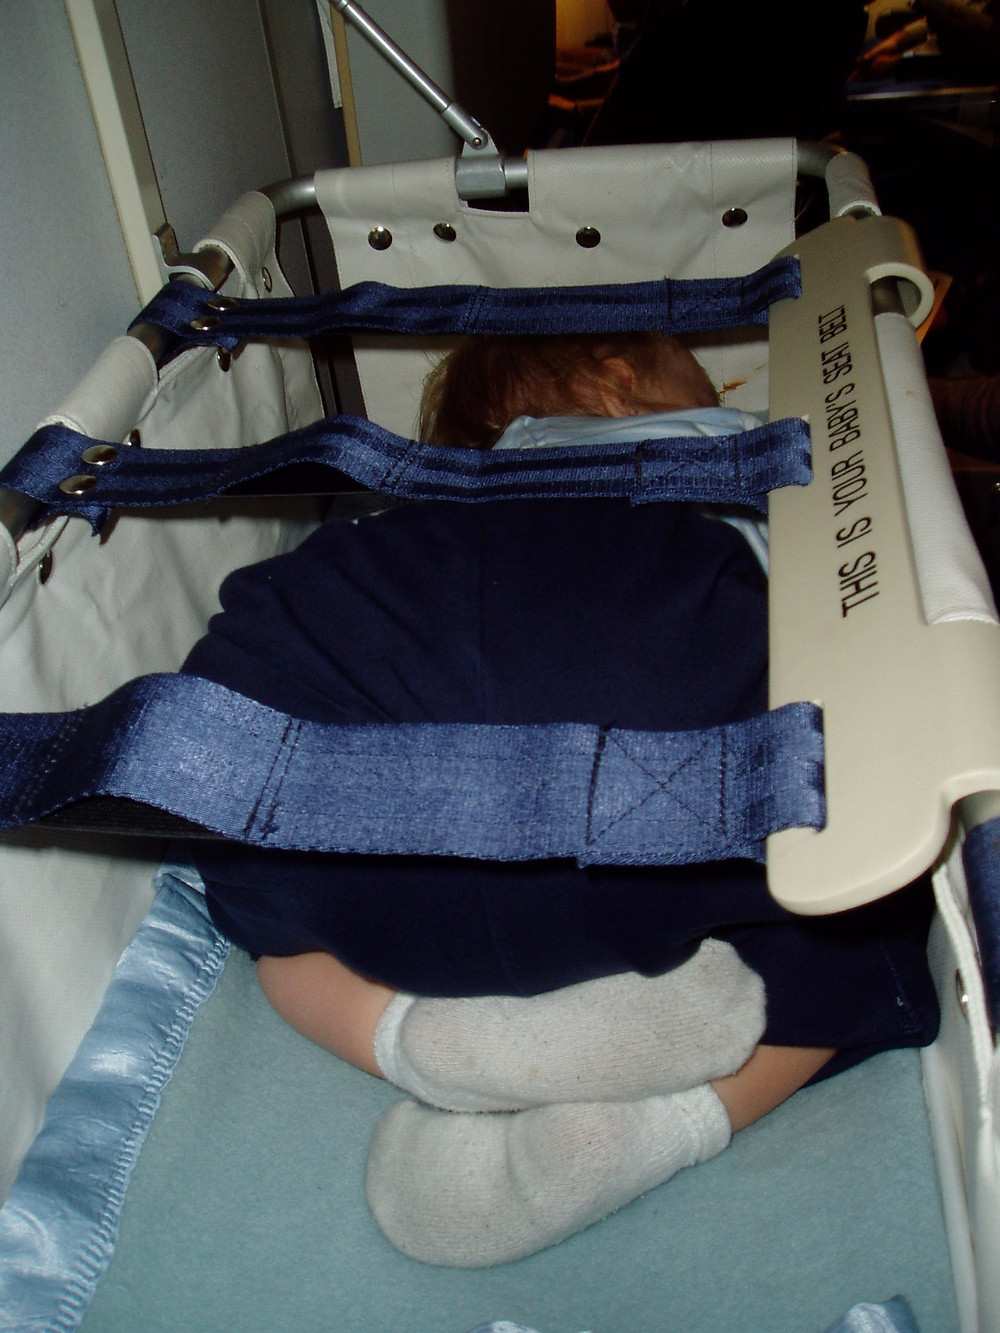 Our 15 month old on a long haul overnight flight